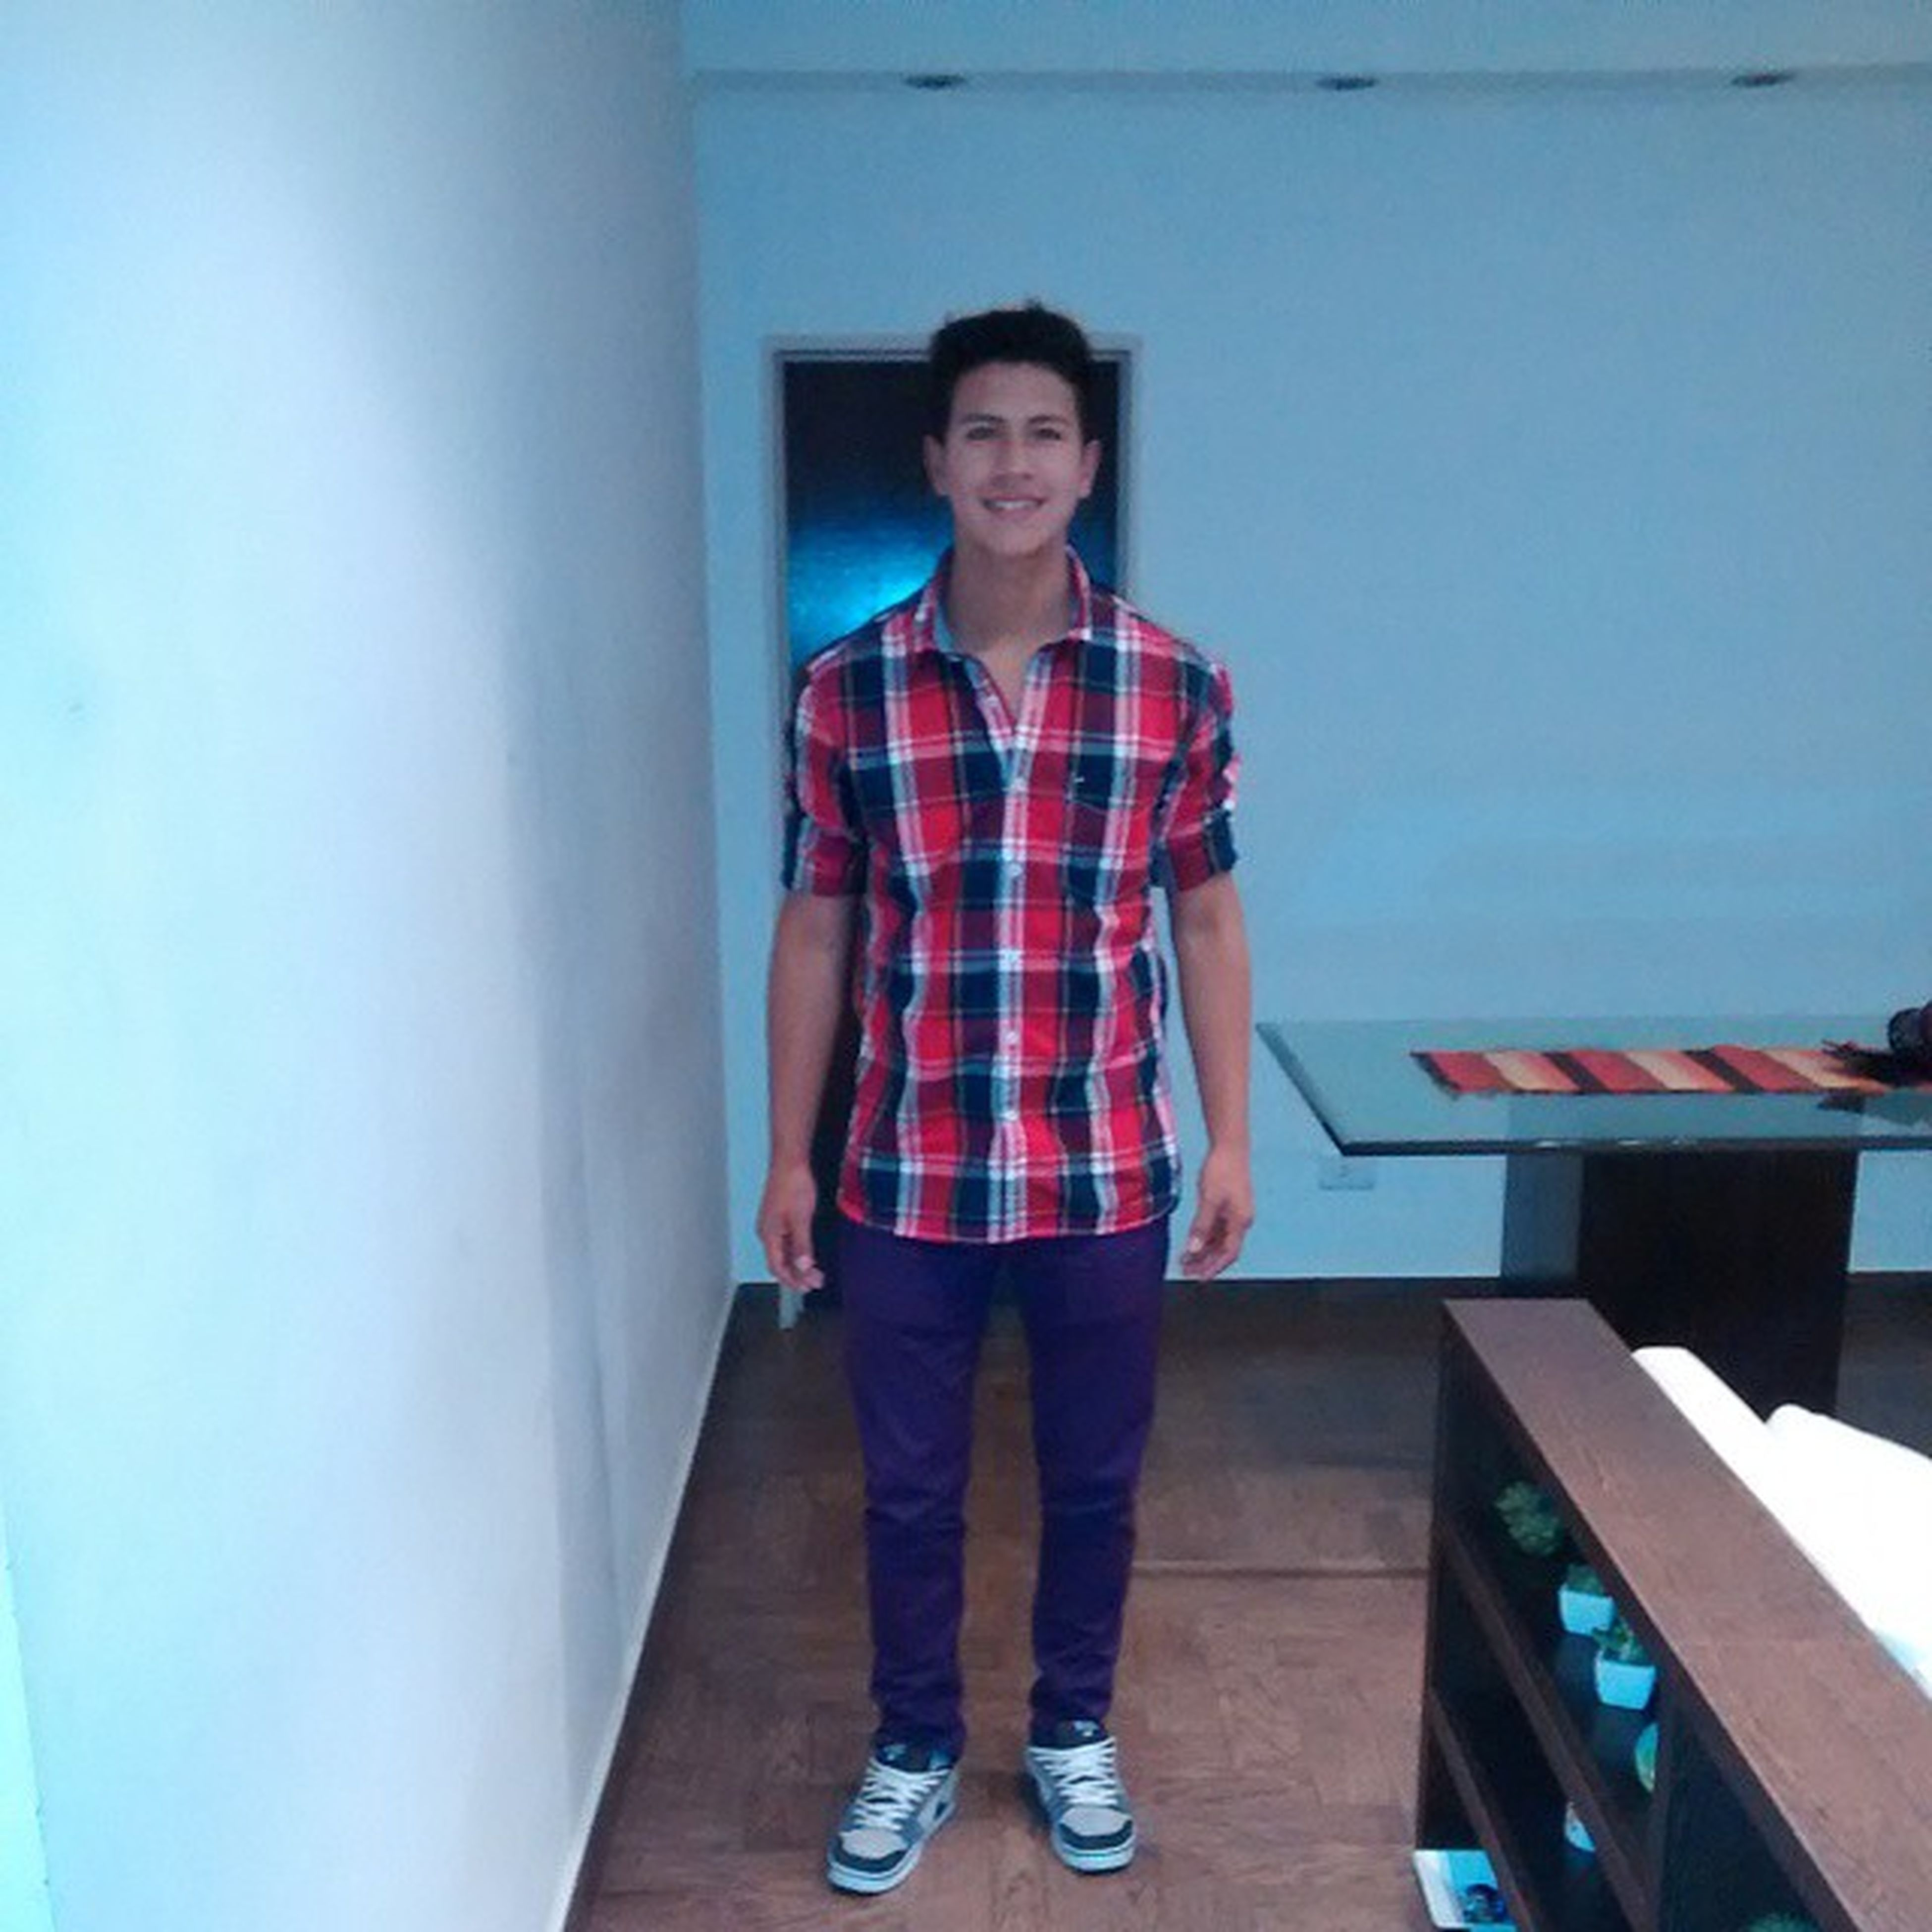 casual clothing, standing, looking at camera, portrait, front view, lifestyles, person, young adult, full length, three quarter length, leisure activity, built structure, blue, architecture, young men, indoors, smiling